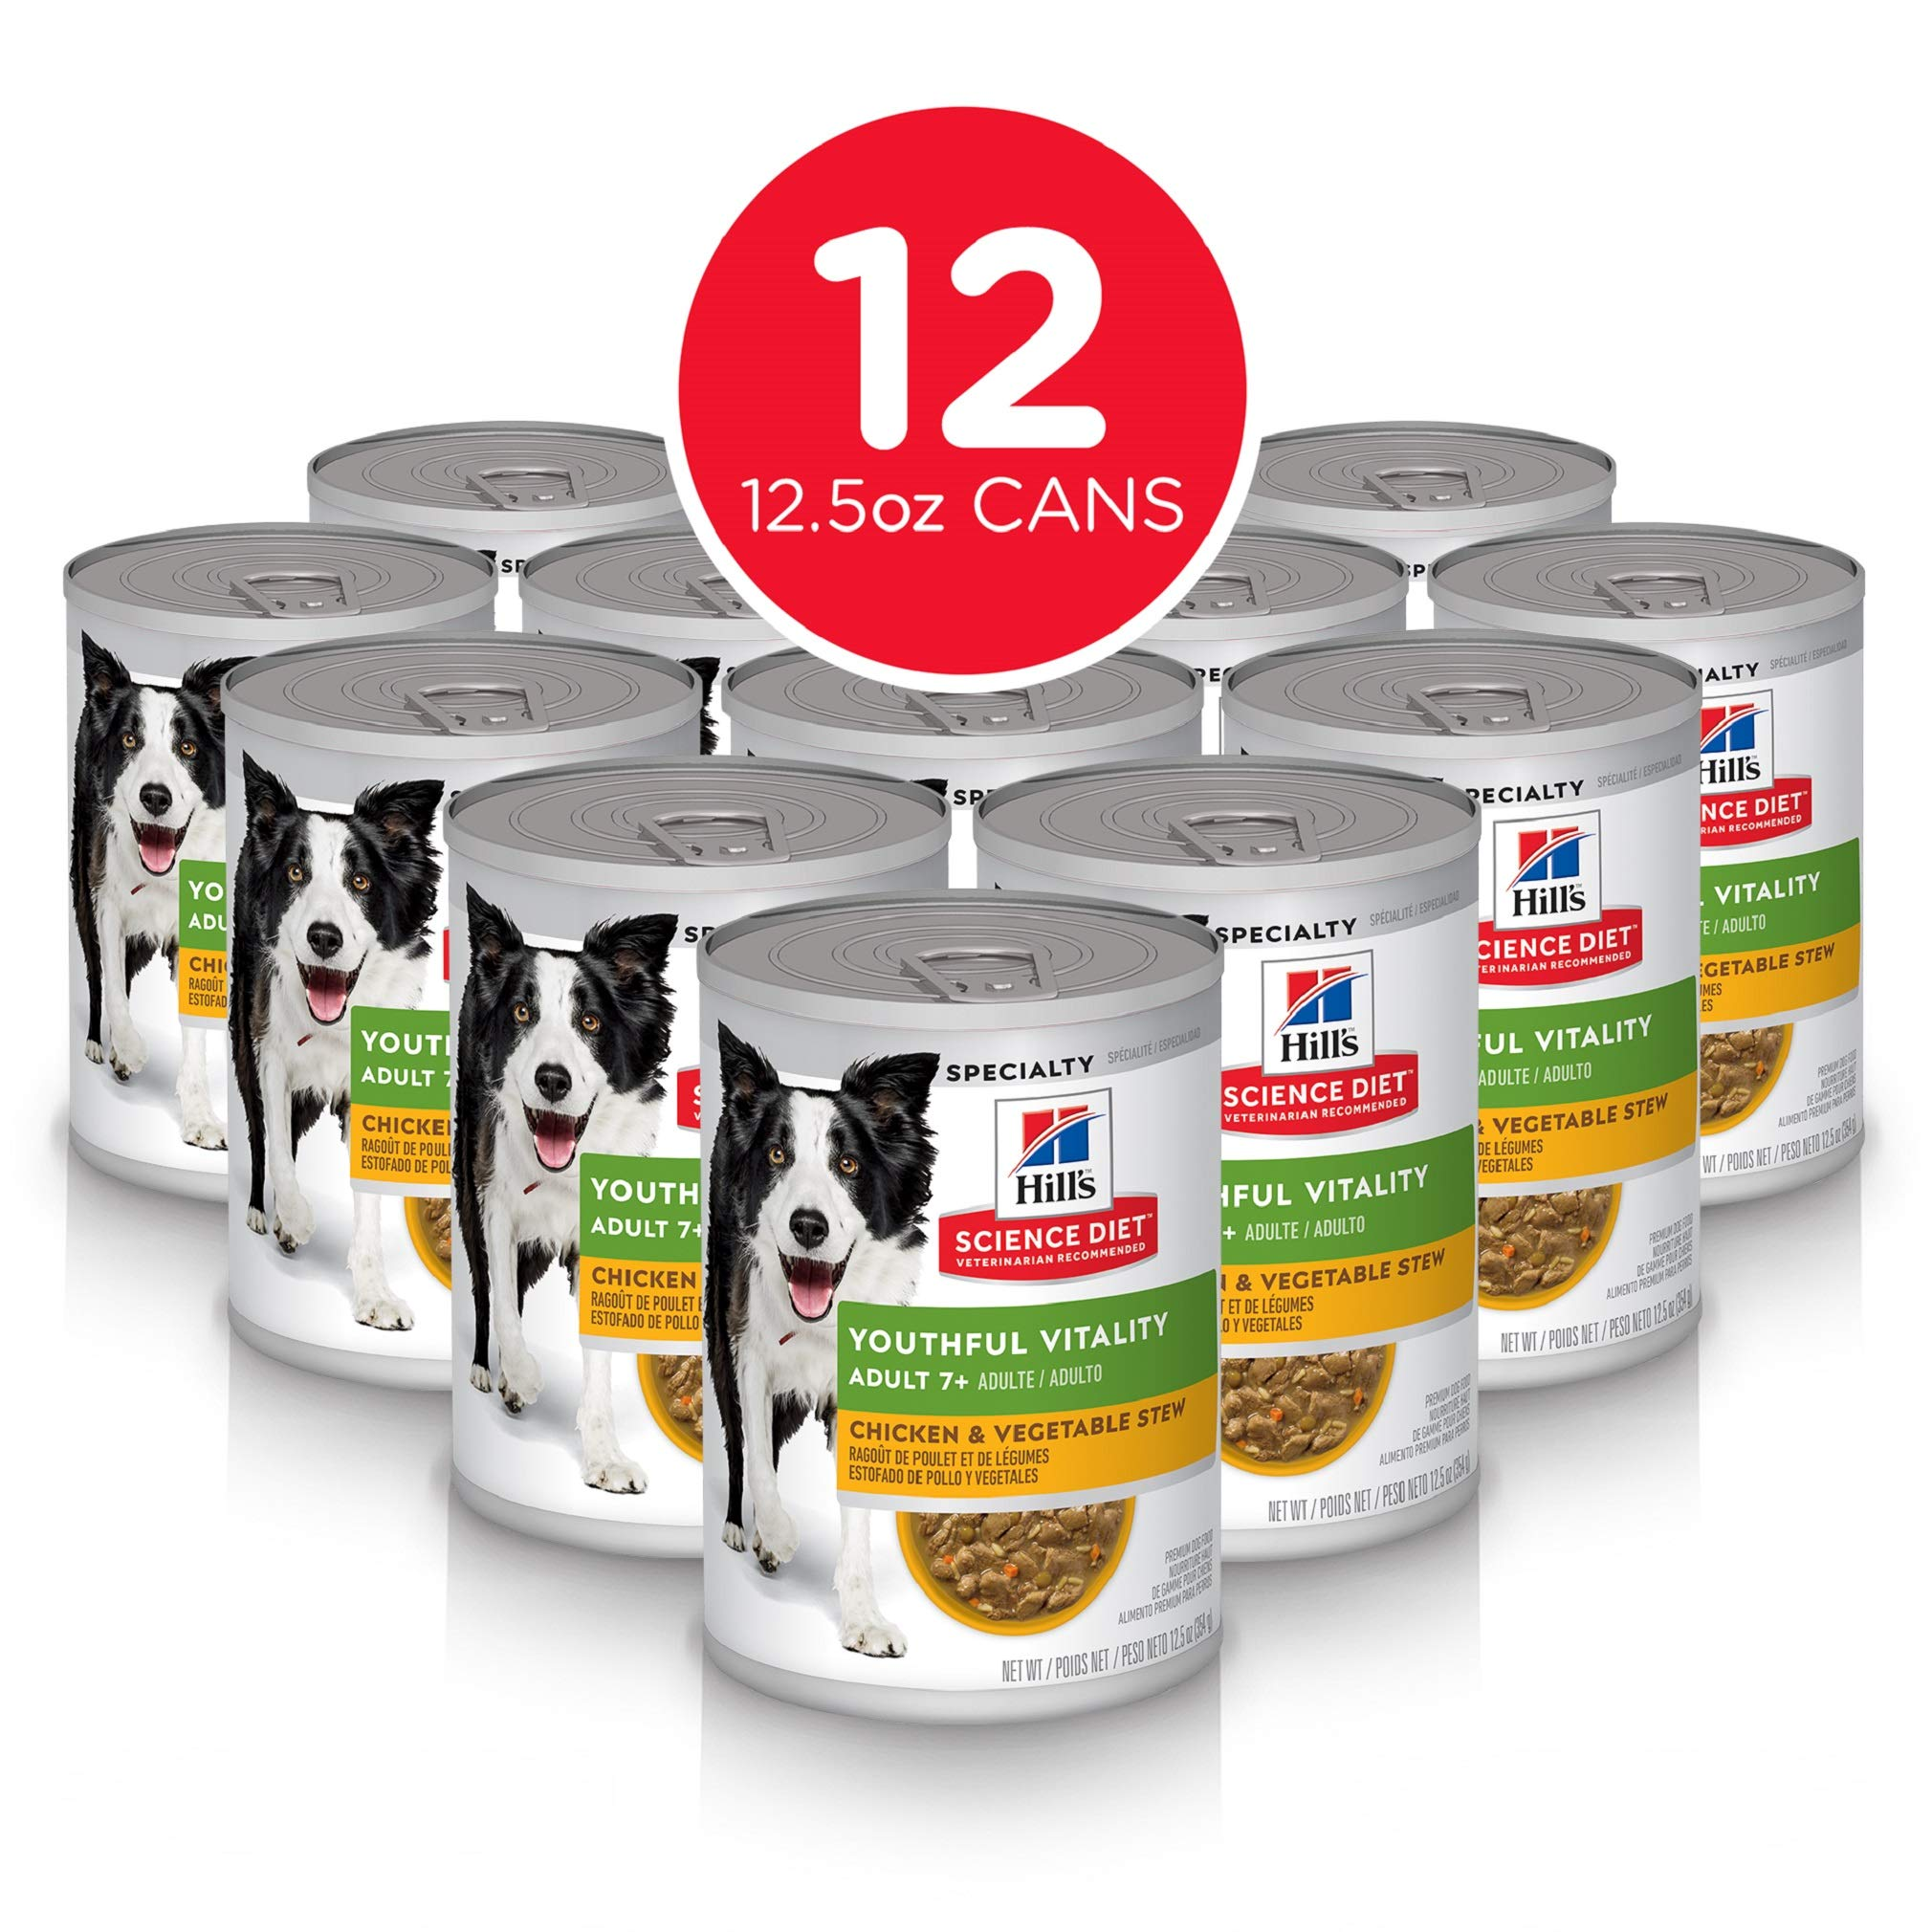 Hill's Science Diet Dog Wet Food, Adult 7+ for Senior Dogs, Youthful Vitality by Hill's Science Diet